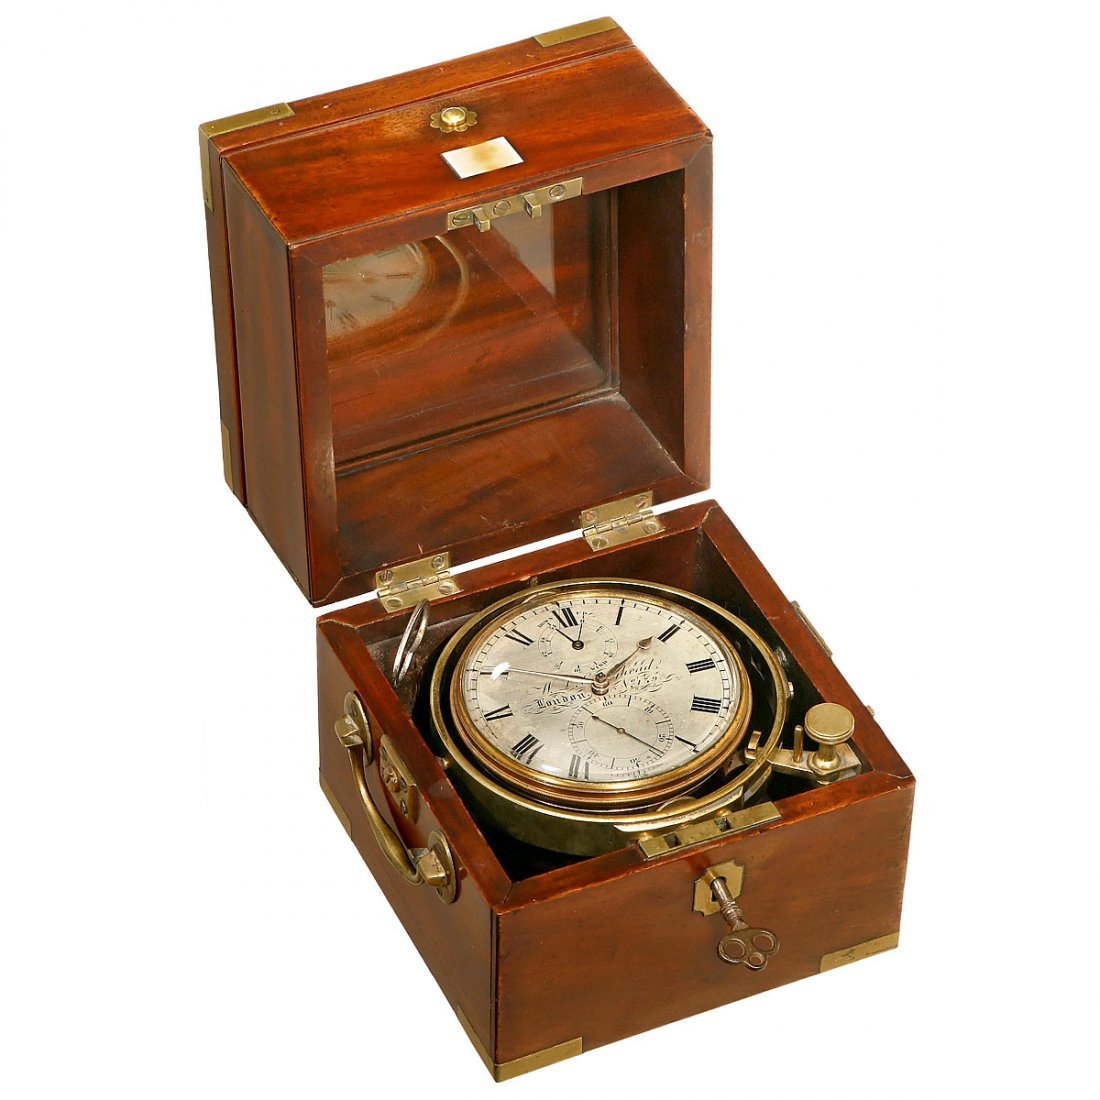 Early Two-Day Marine Chronometer by W.L. Craighead, c.